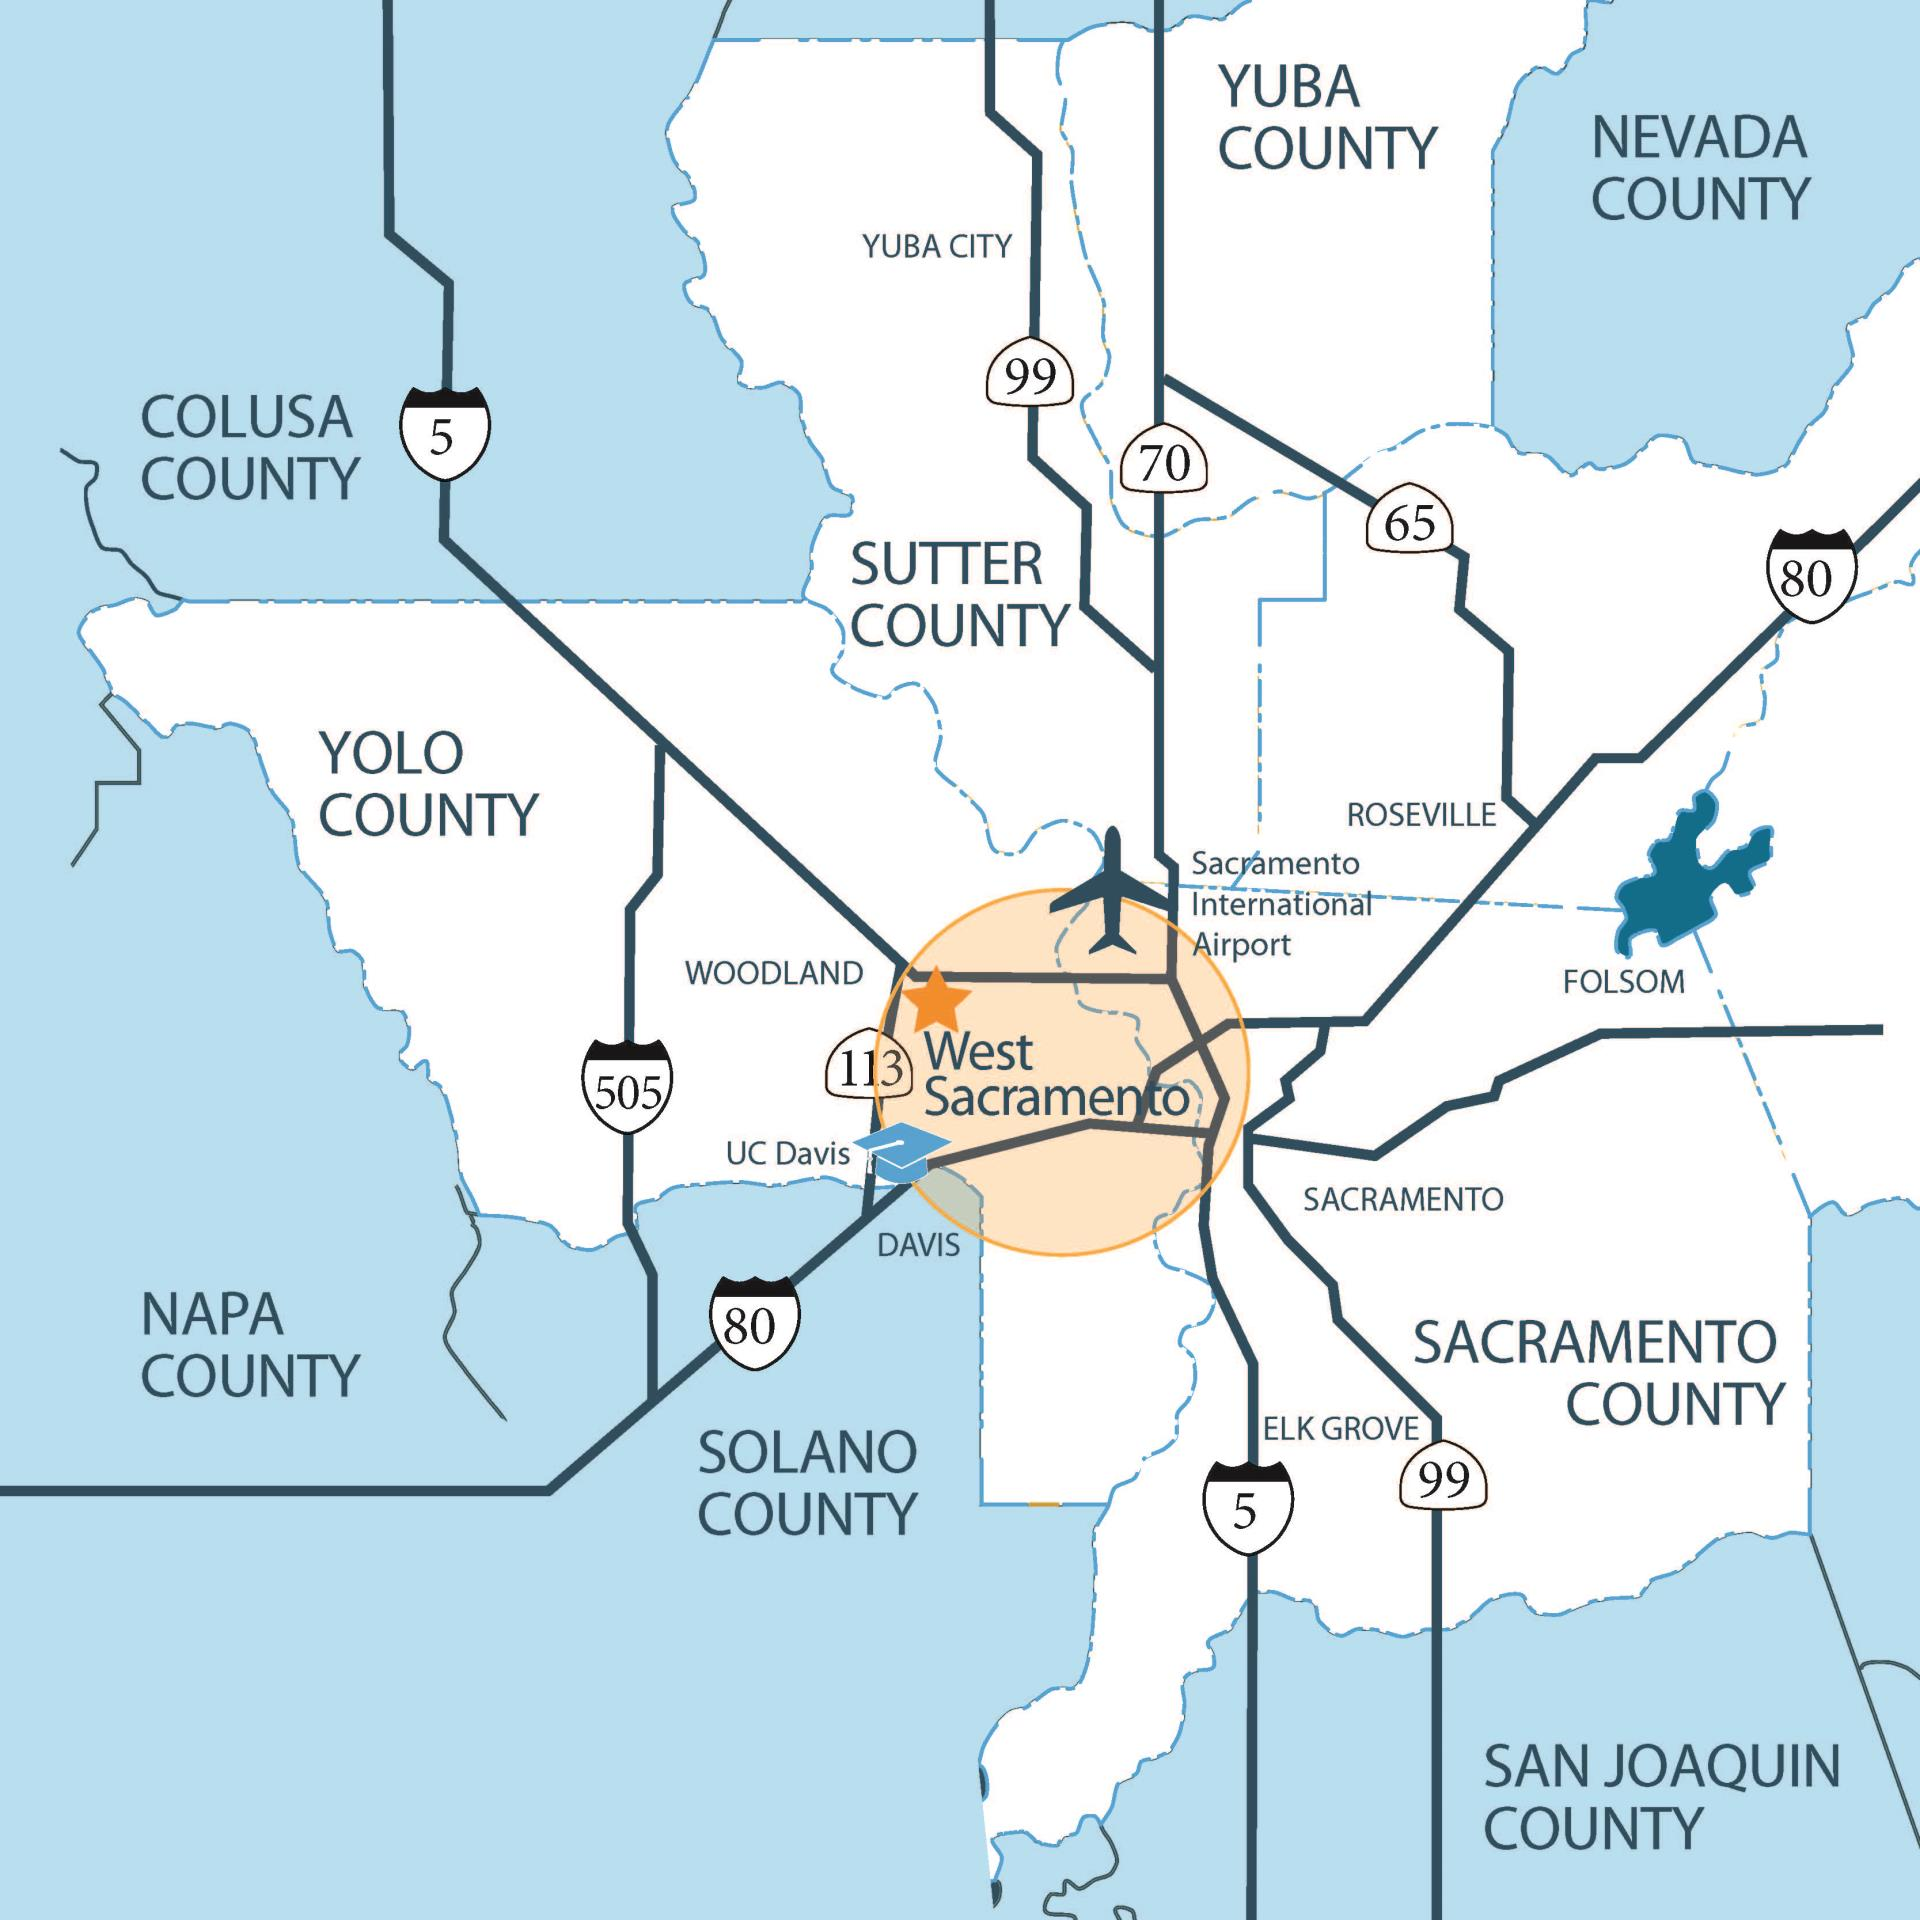 Map of West Sacramento and surrounding area